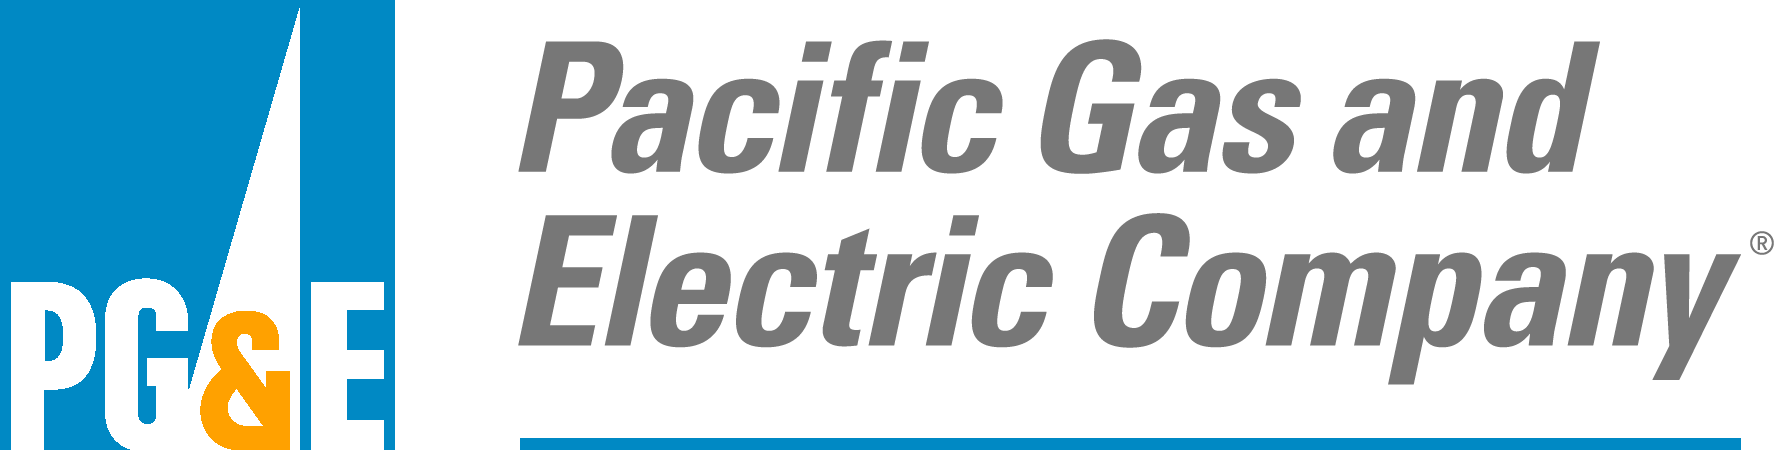 Pacific Gas and Electric Company PG&E